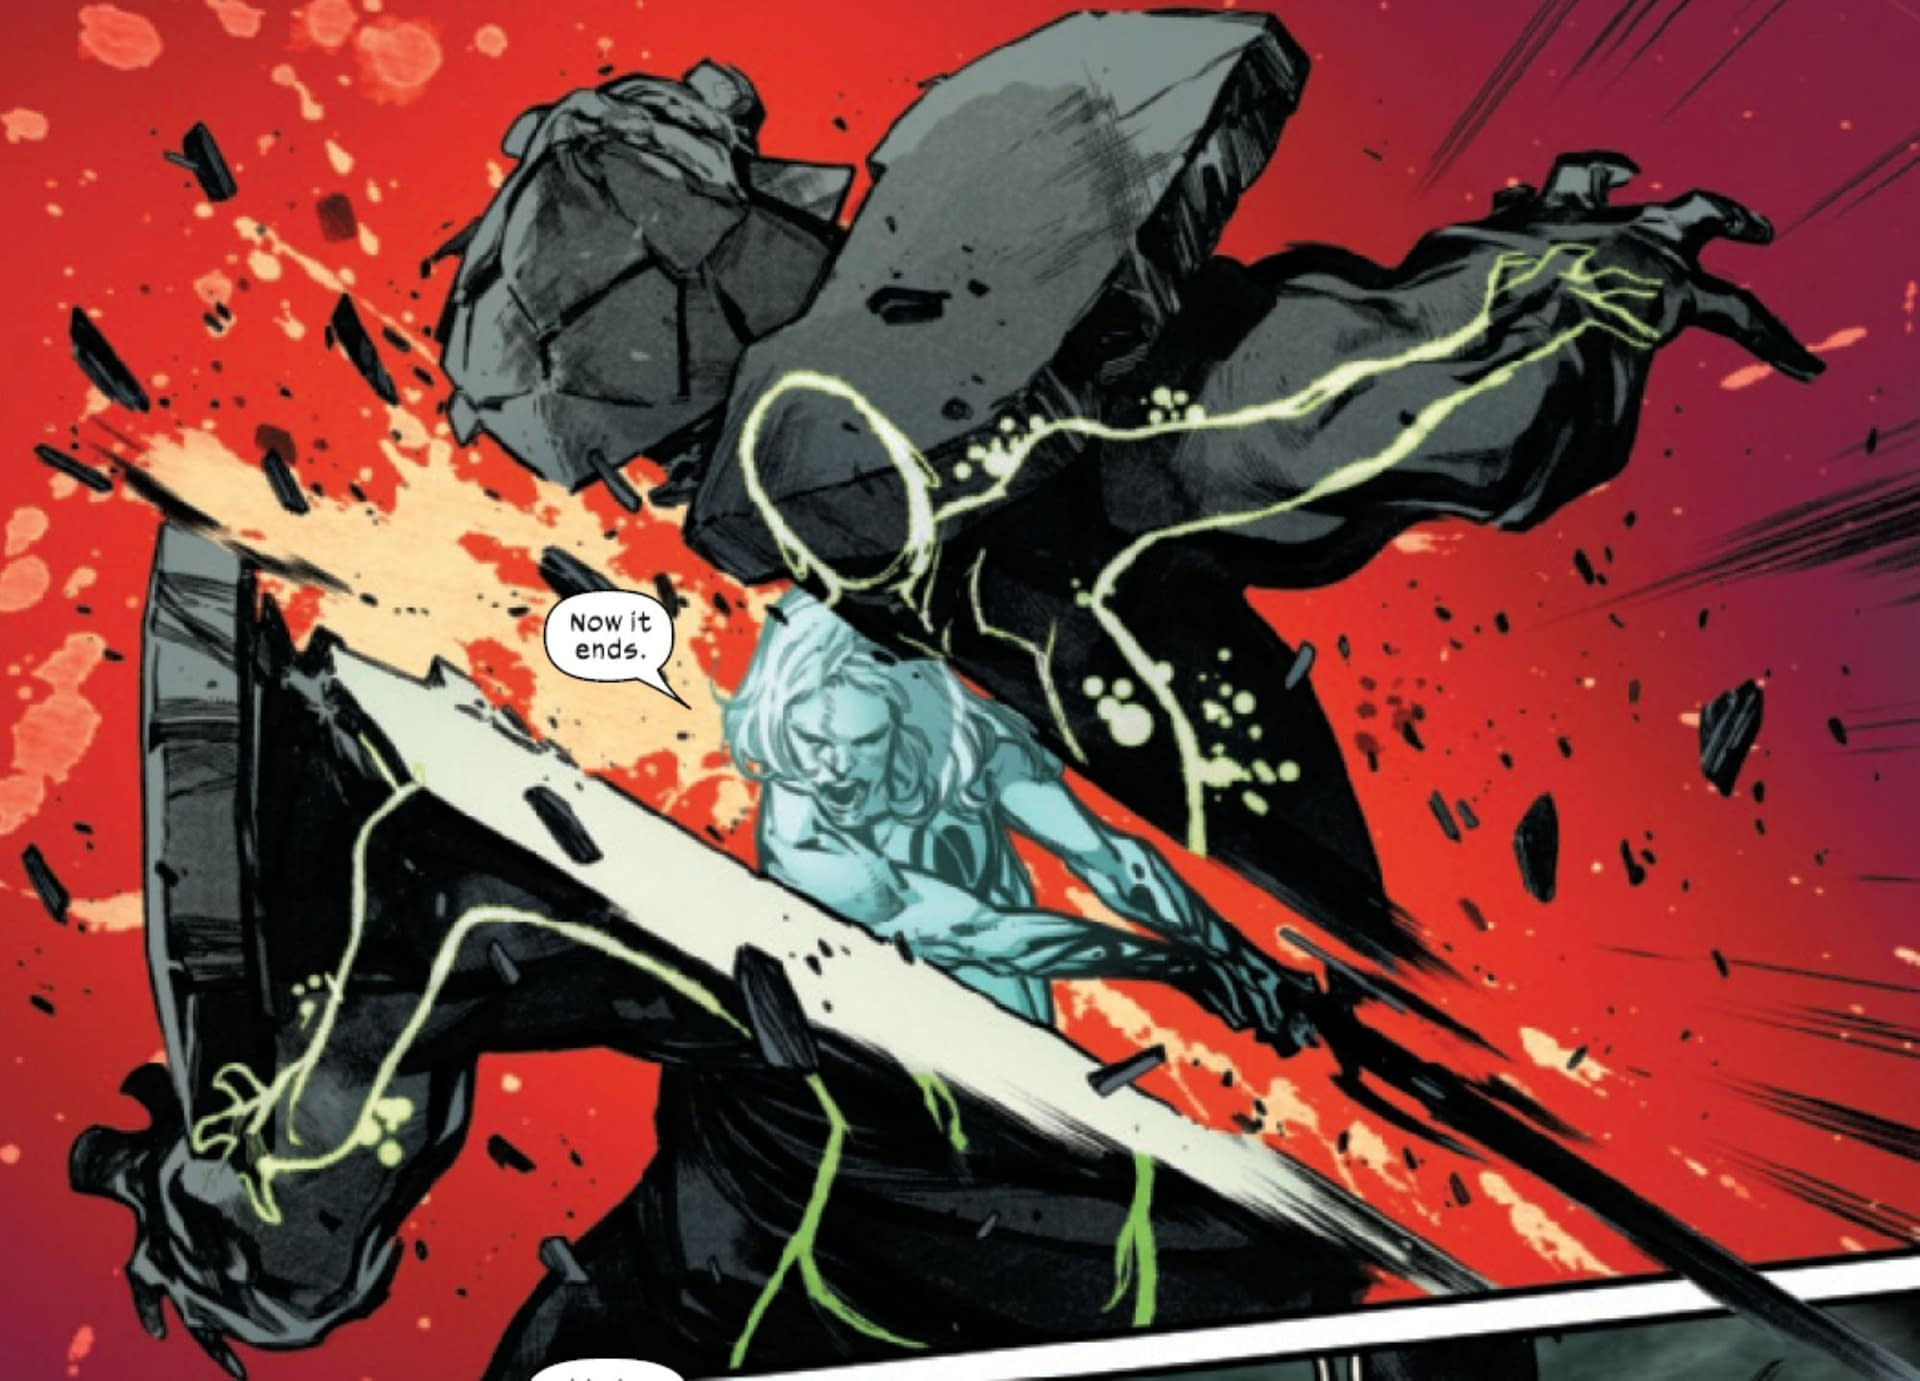 Mutant Warning: Don't Die On Otherworld (X-Factor #4 Spoilers)